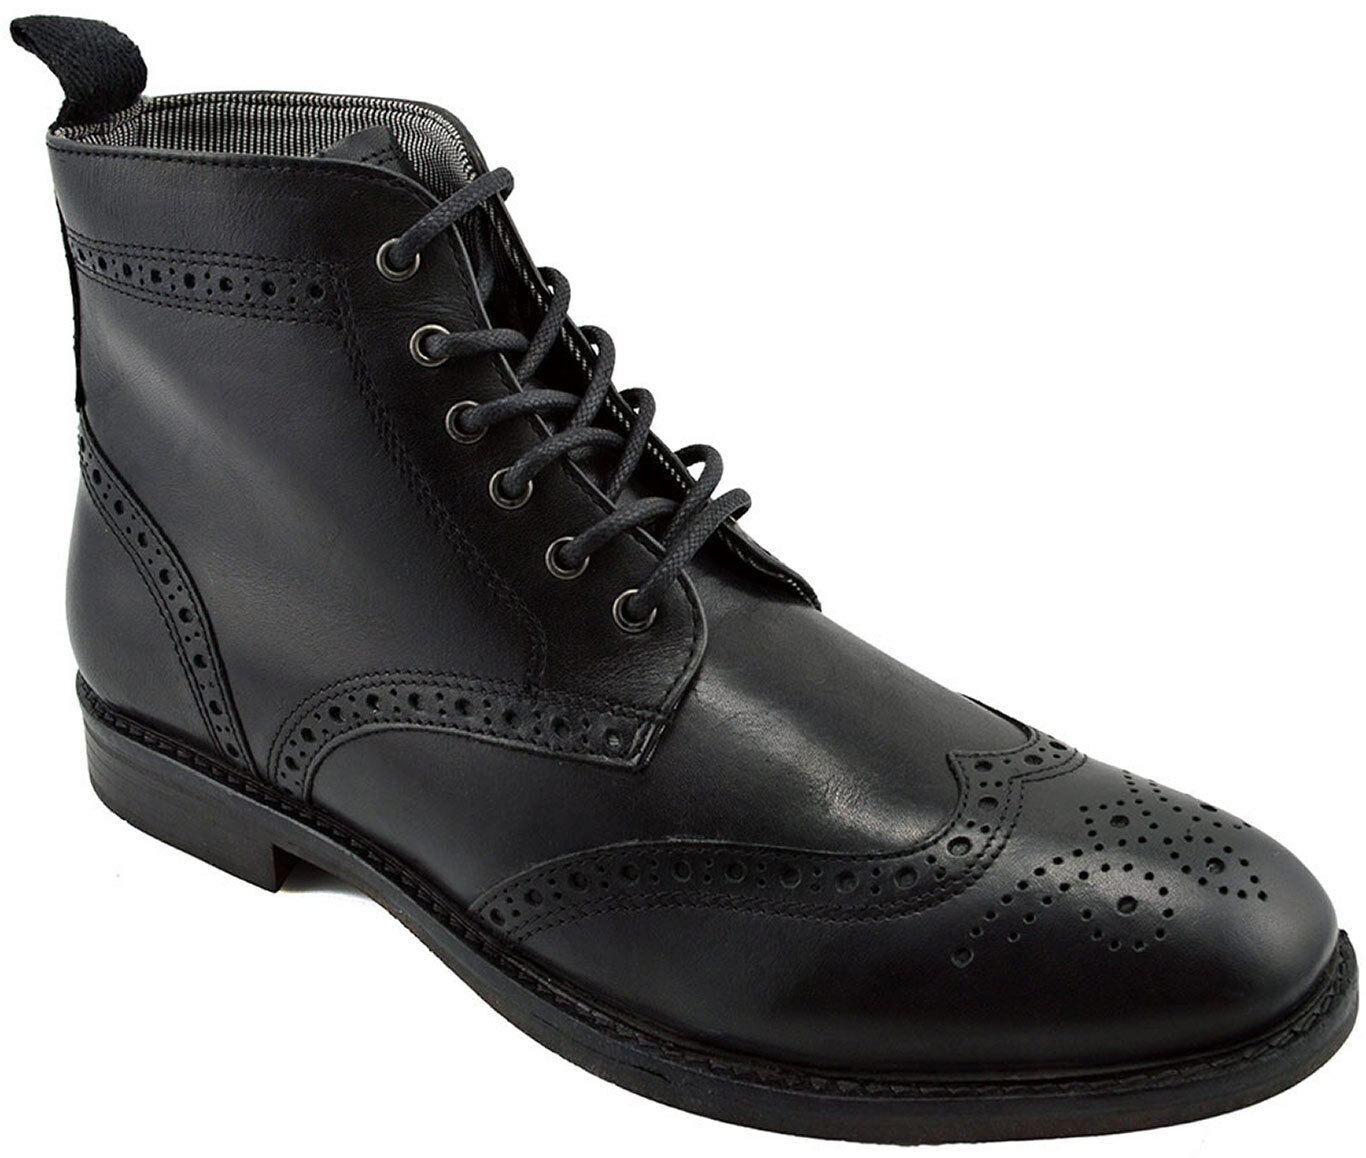 215 RED Tape Black Leather GLAVEN Brogue Ankle Boots Men shoes NEW COLLECTION